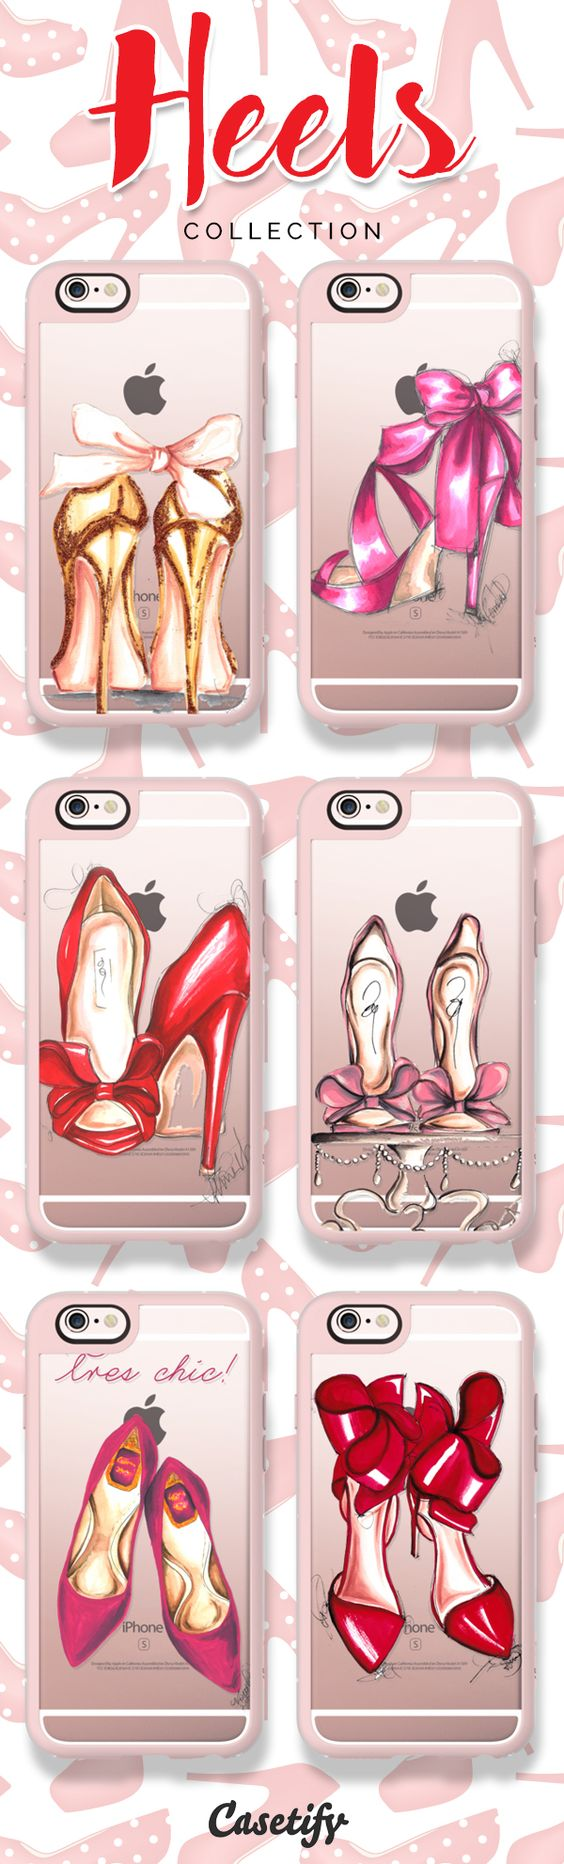 Hit the floor with these heels! Shop link here: chttps://www.casetify.com/artworks/f5nPDCWnsA | @casetify